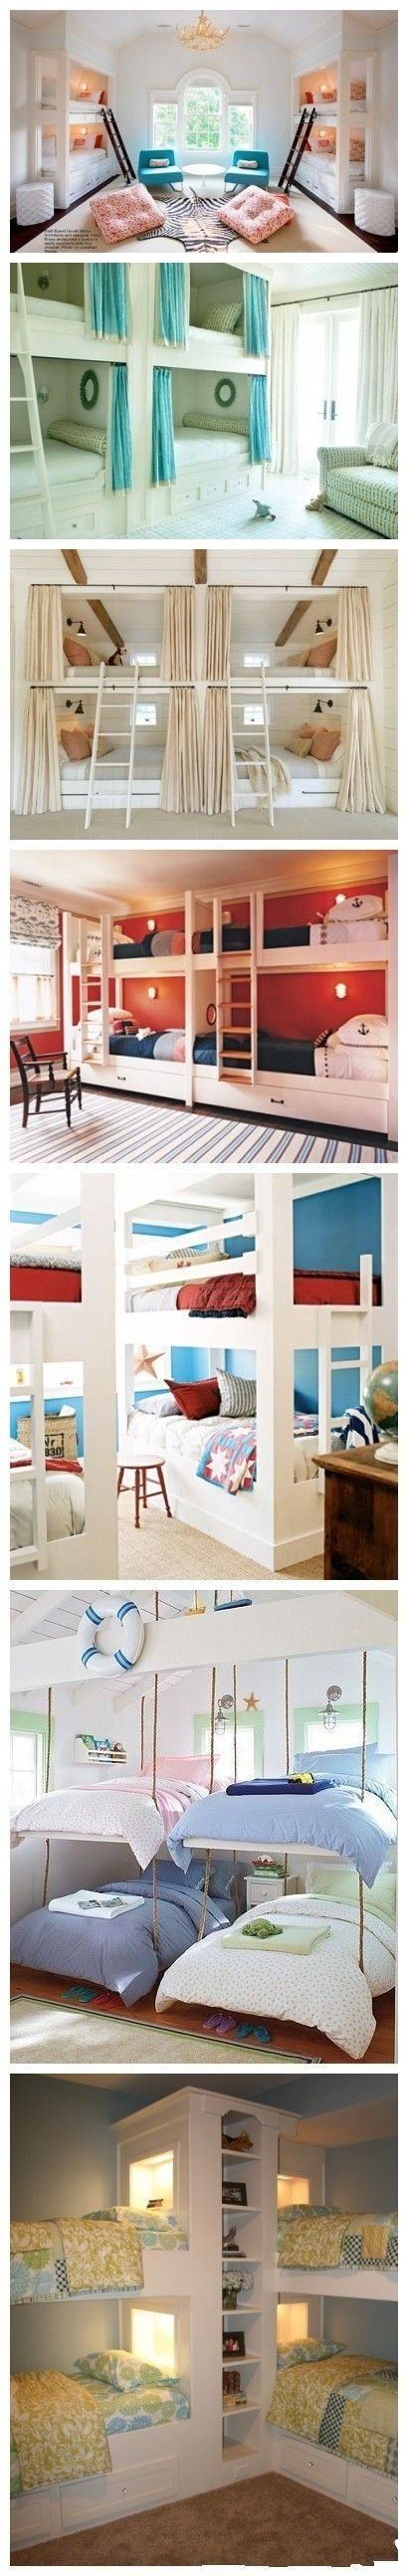 Bunk Room inspiration...I may have to use this one day considering I might have twins or multiples. My family is full of them- on both sides!!!